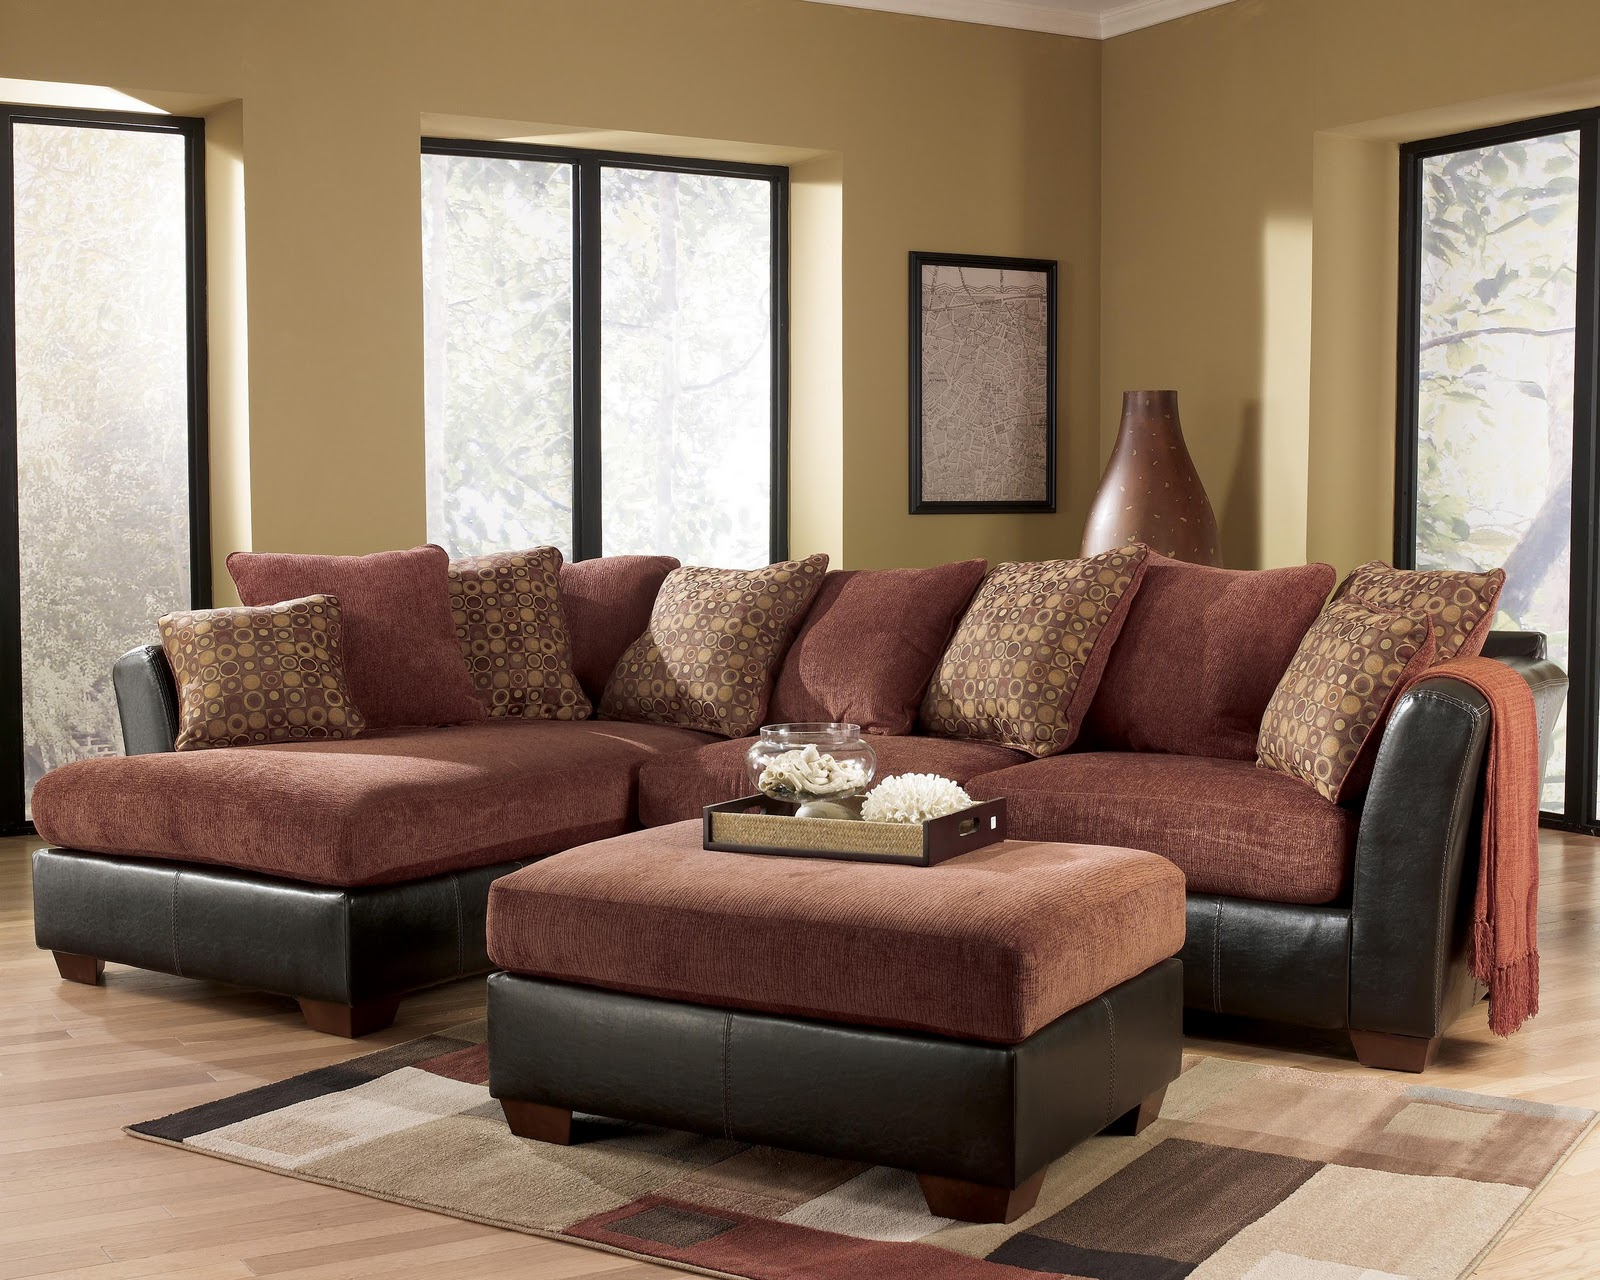 Amazing Ashley Furniture Sectional Sofas 1600 x 1280 · 454 kB · jpeg